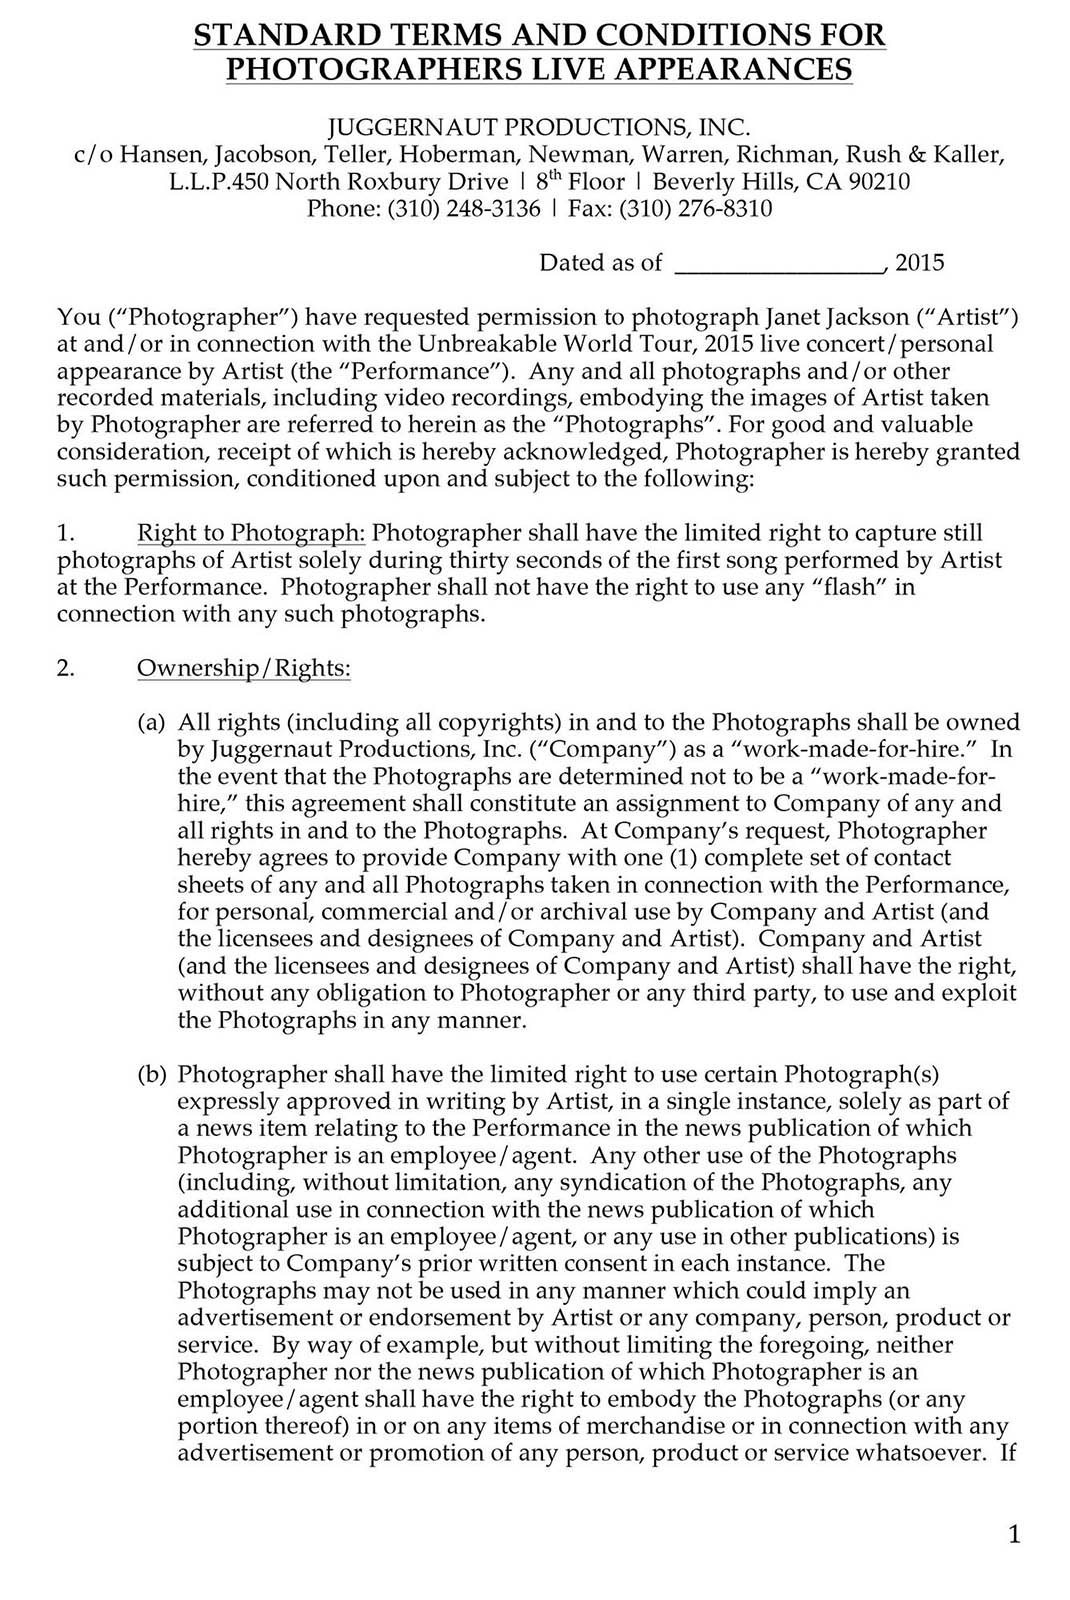 STANDARD TERMS AND CONDITIONS FOR PHOTOGRAPHERS